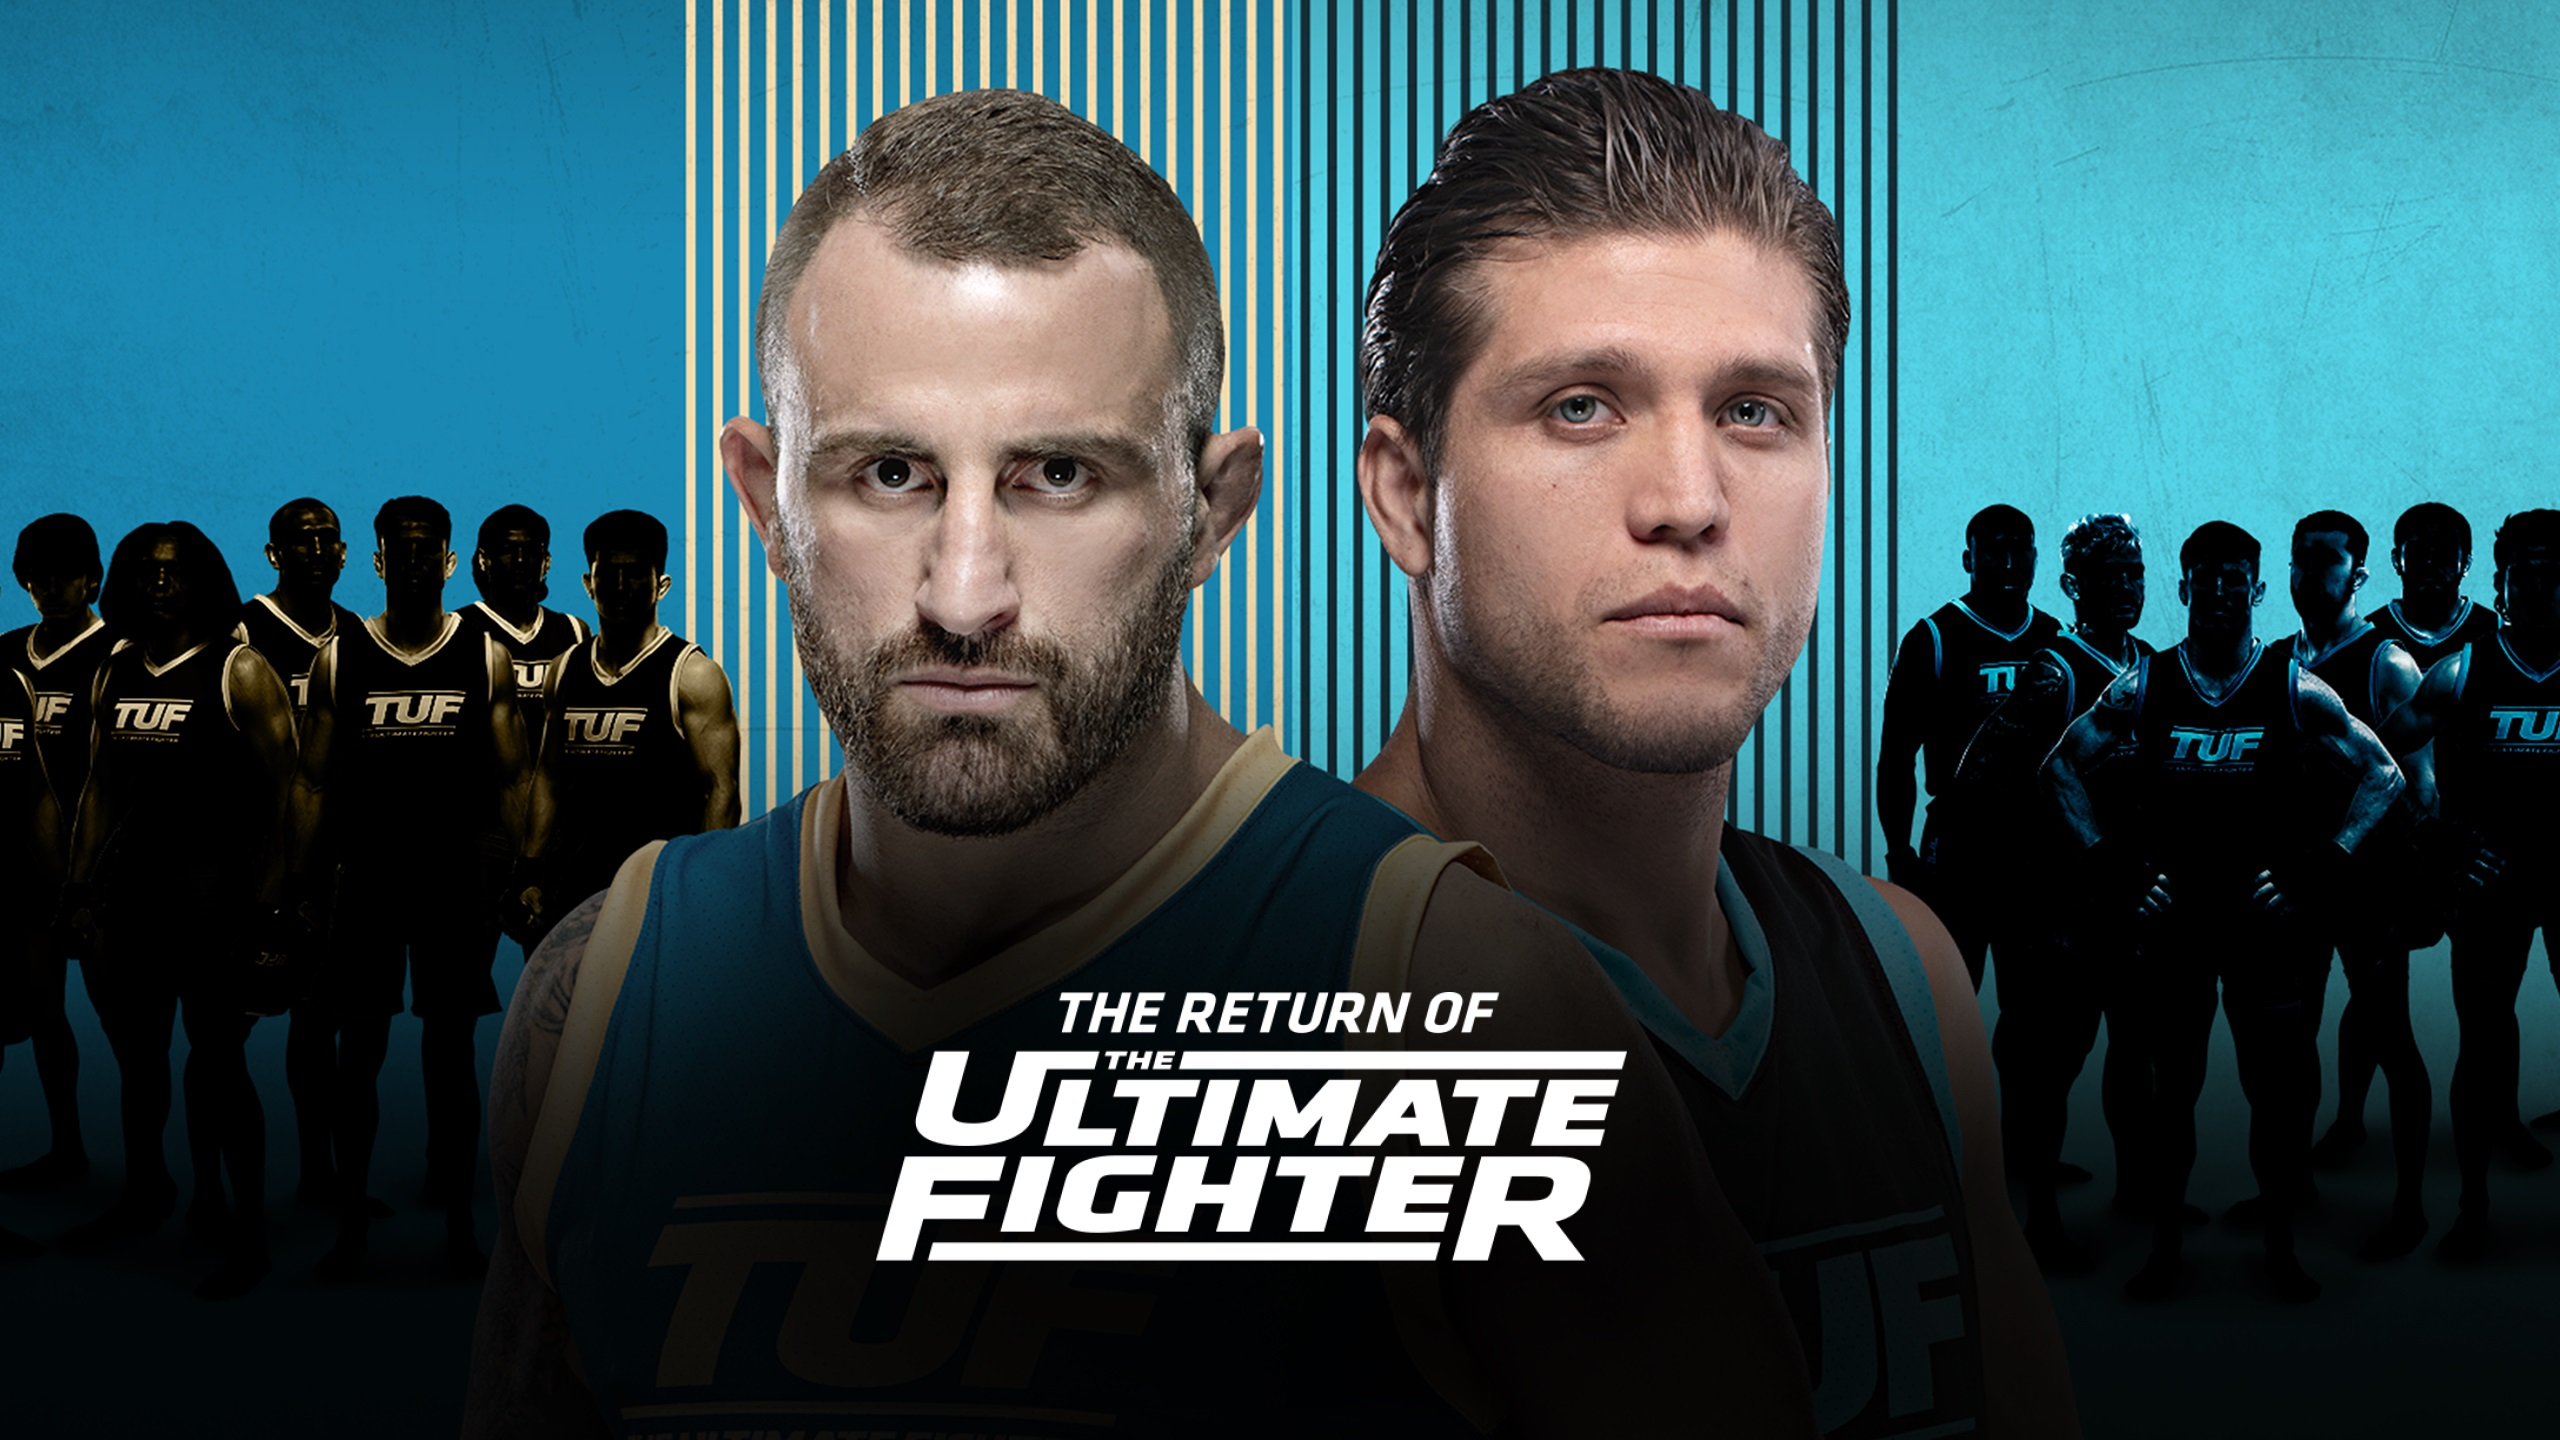 What you need to know about The Return of The Ultimate Fighter - Team Volkanovski vs. Team Ortega